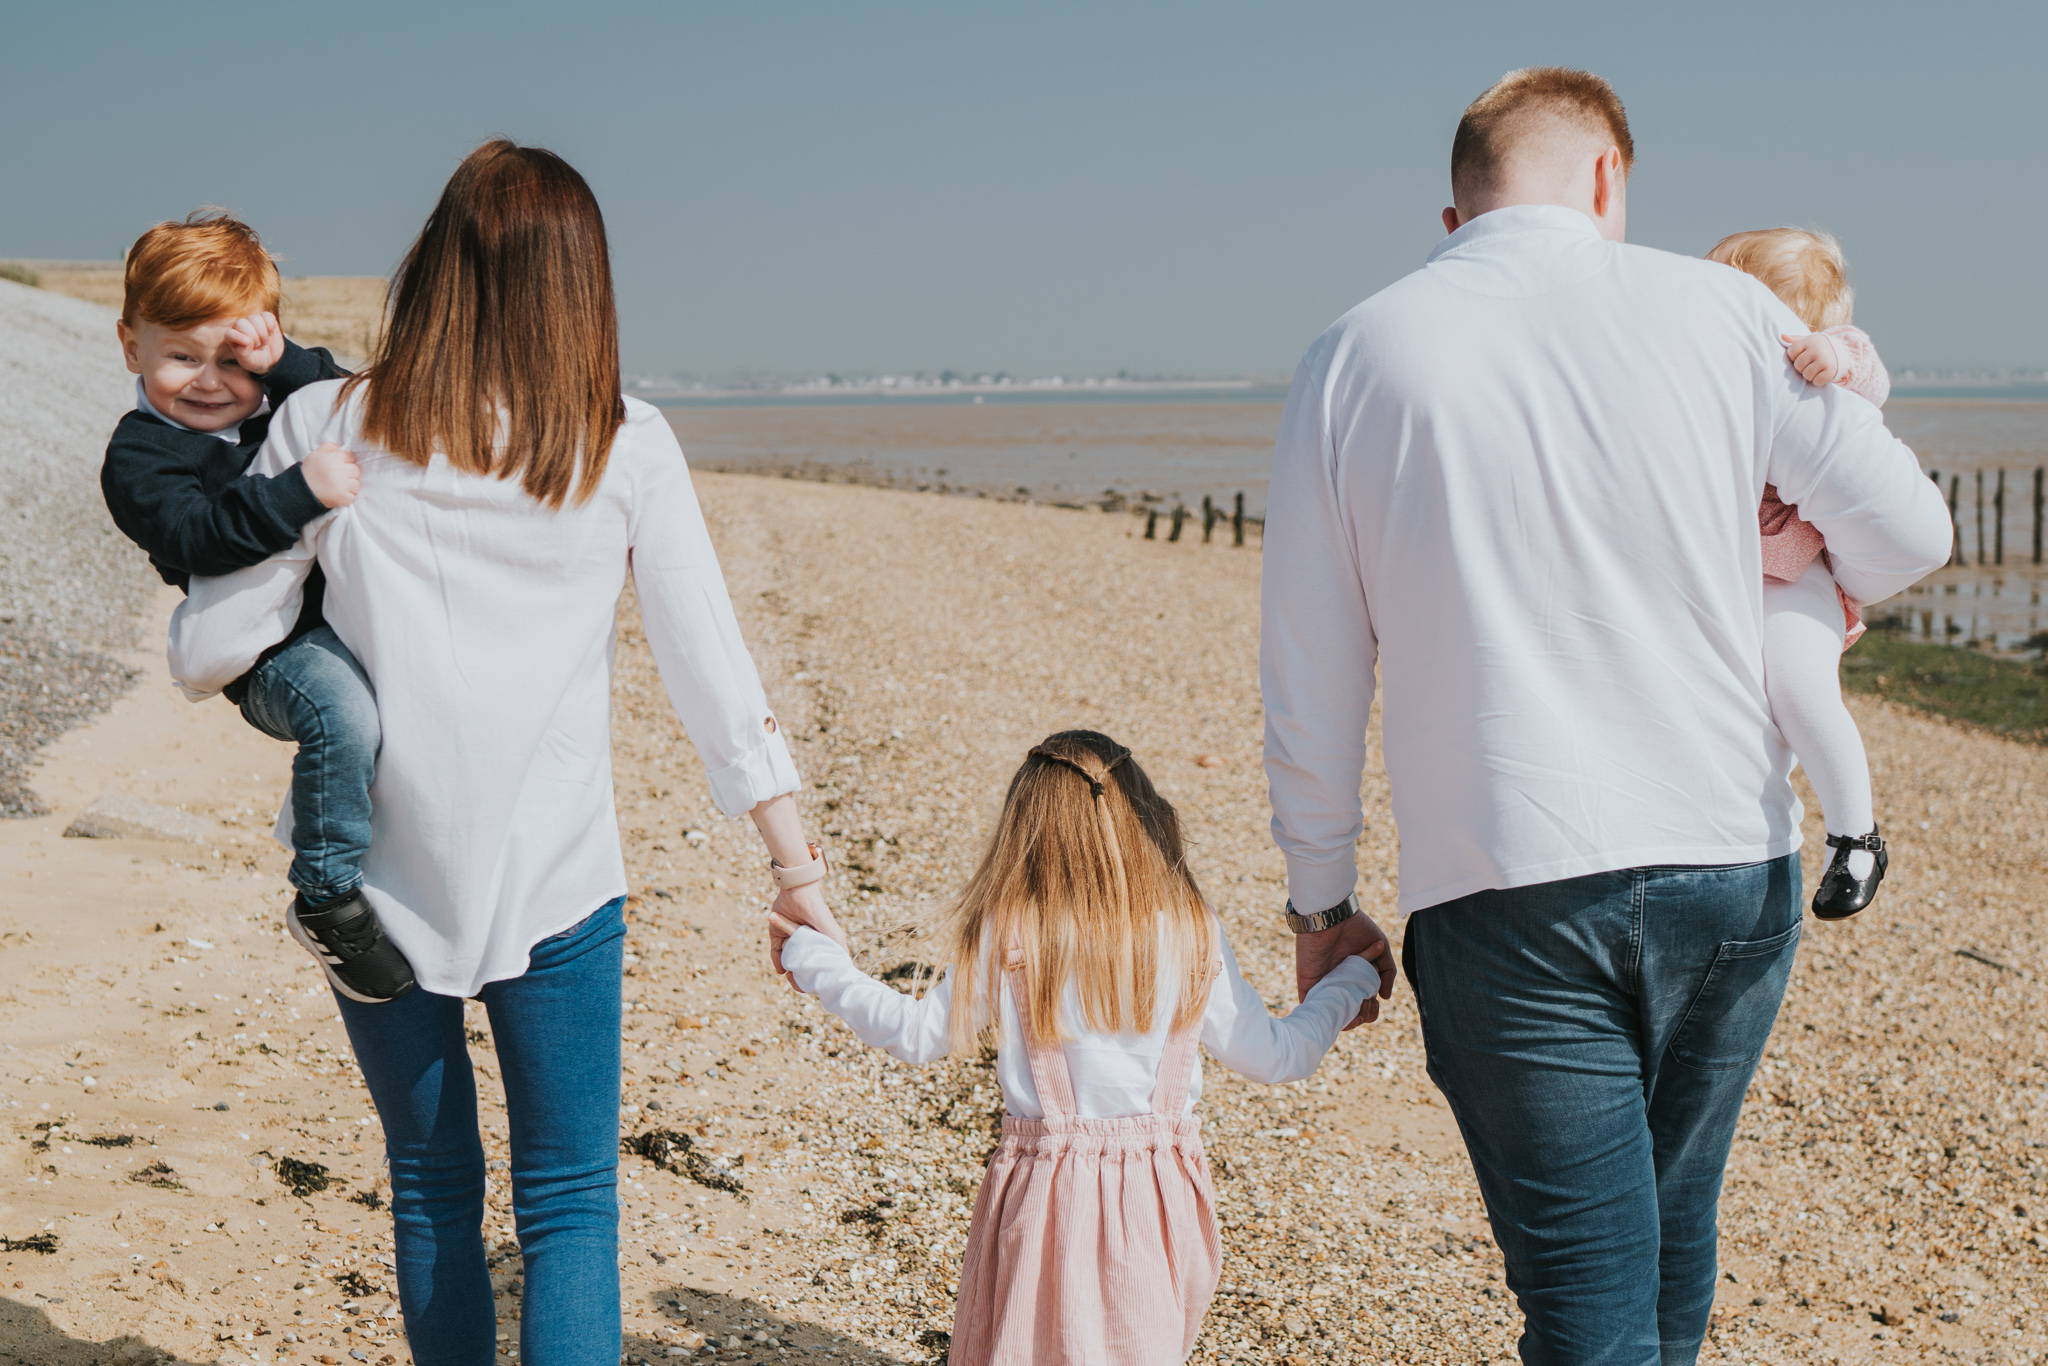 ruse-family-cudmore-grove-beach-family-session-grace-elizabeth-colchester-essex-alternative-wedding-lifestyle-photographer-essex-suffolk-devon-1.jpg